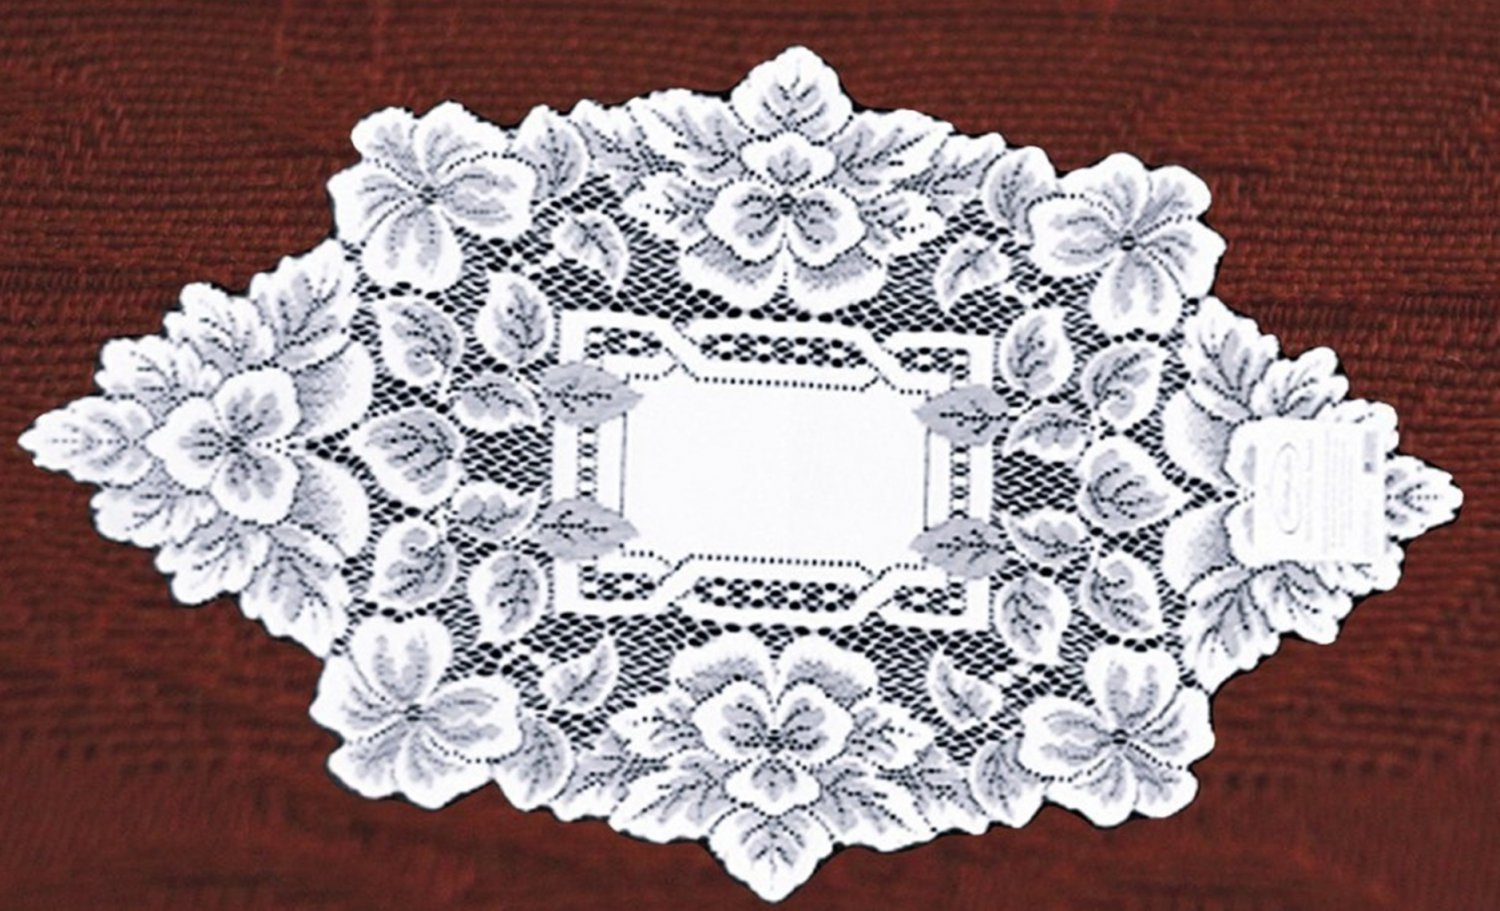 Heirloom Doily 12 x 20 White Heritage Lace Set Of (2) Doilies